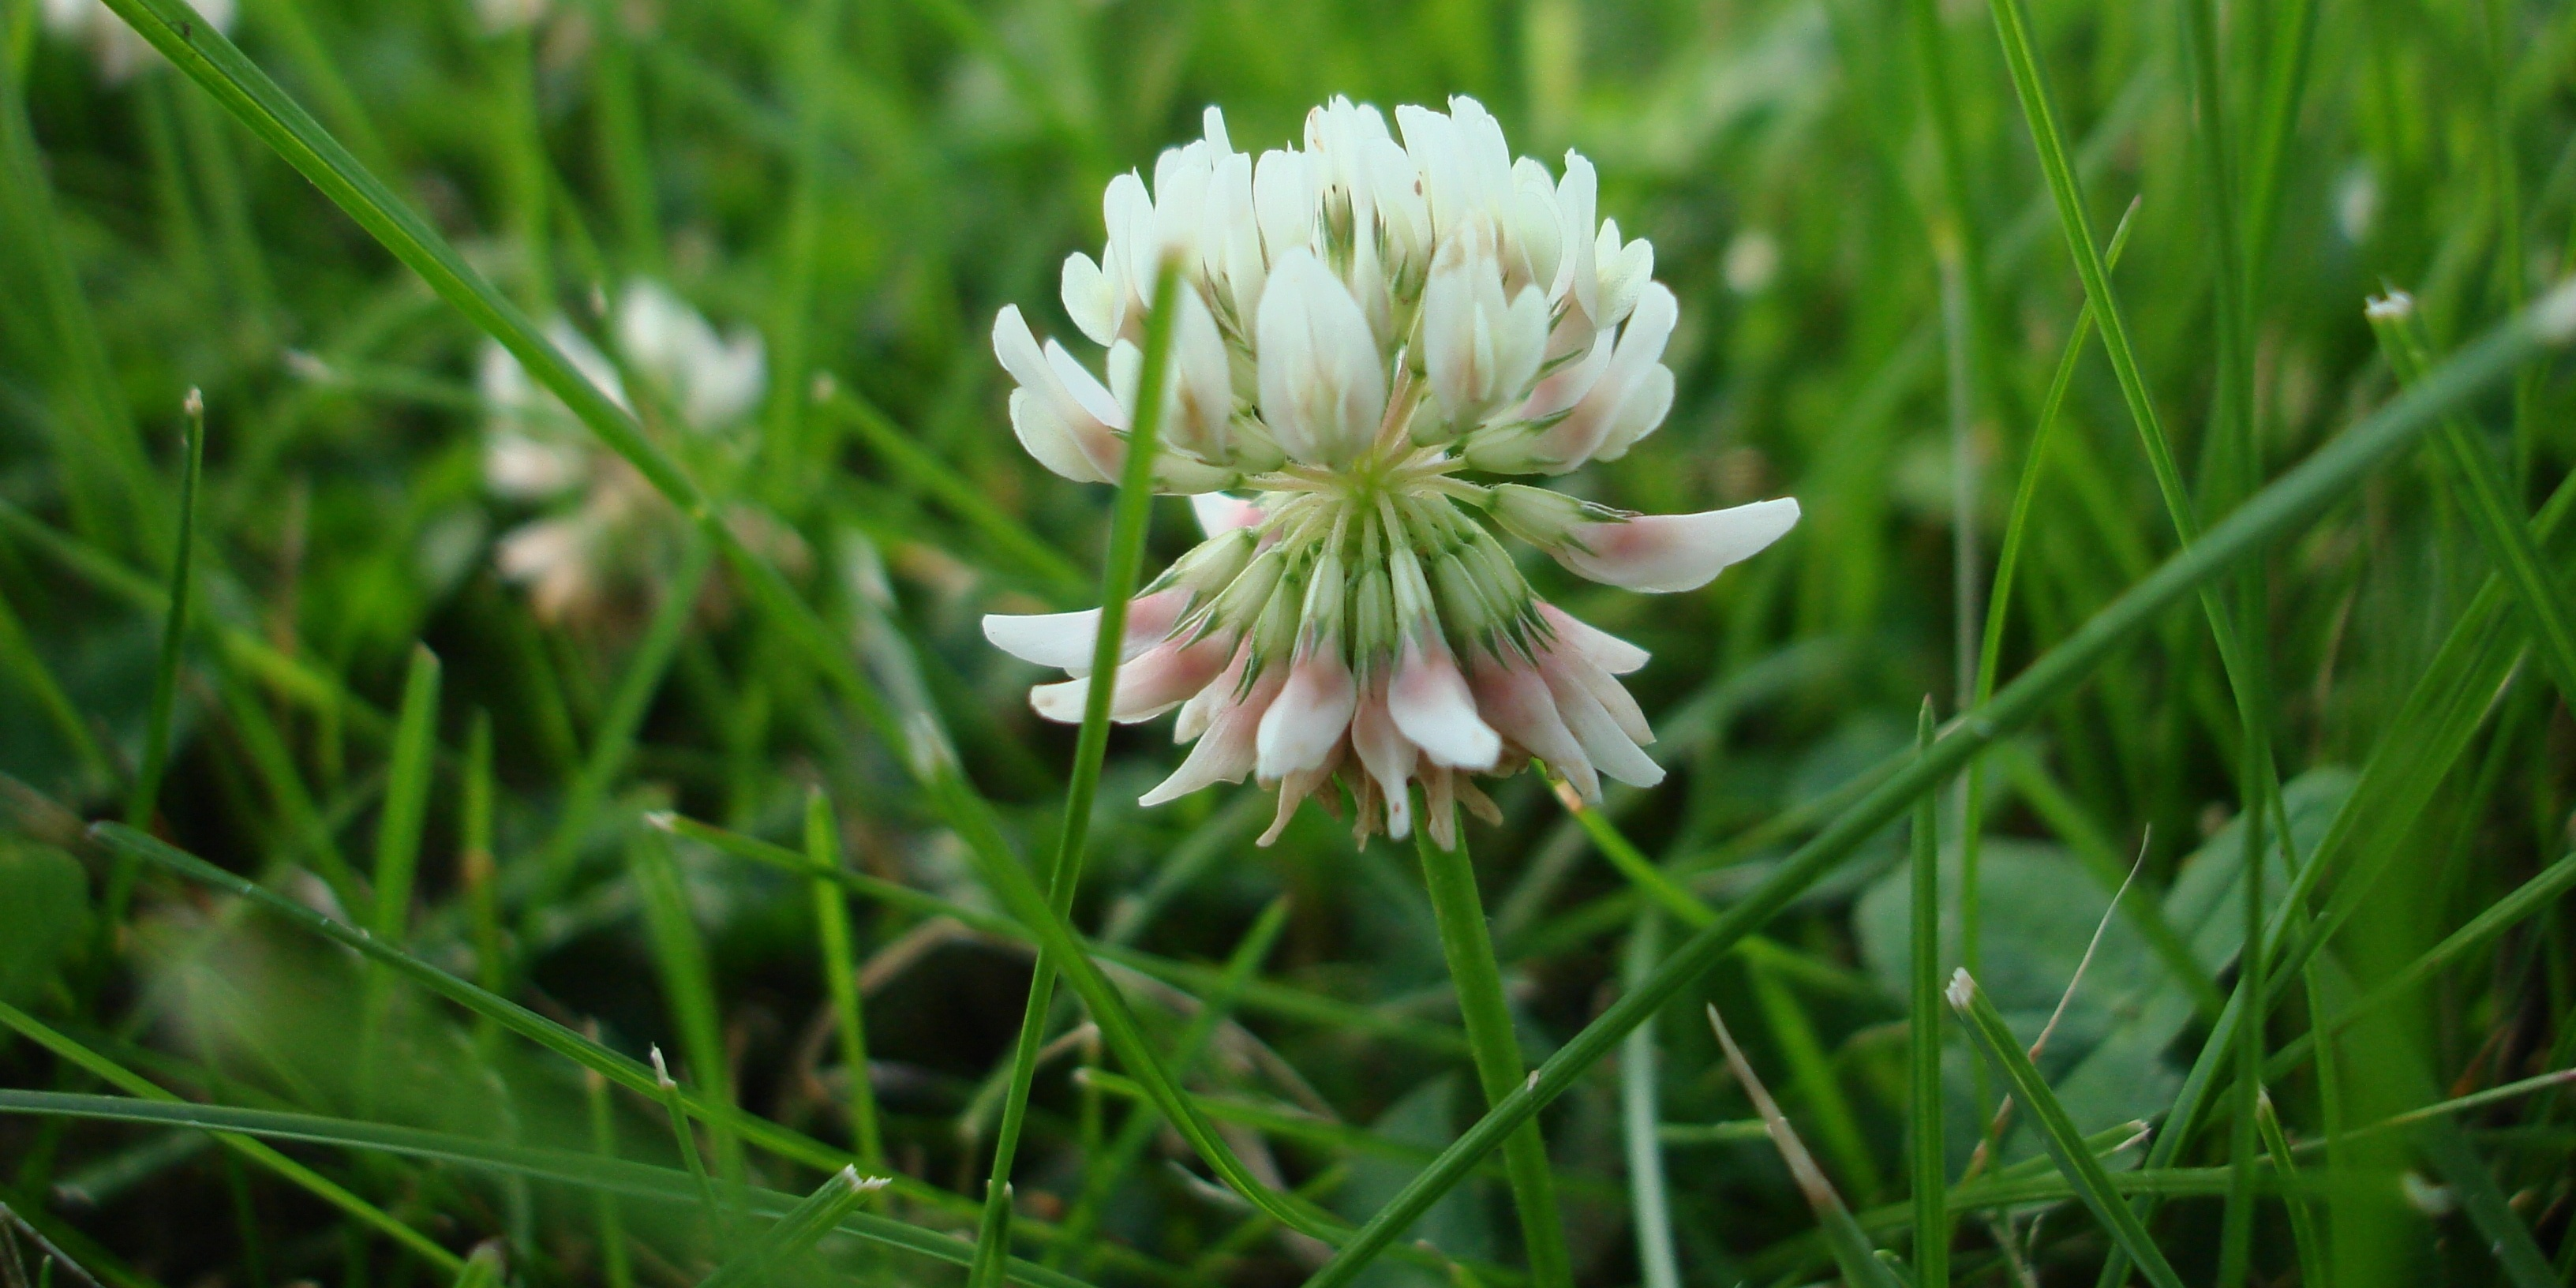 Although some homeowners might not want White Clover in their lawns, others actually plant White Clover in place of grass.